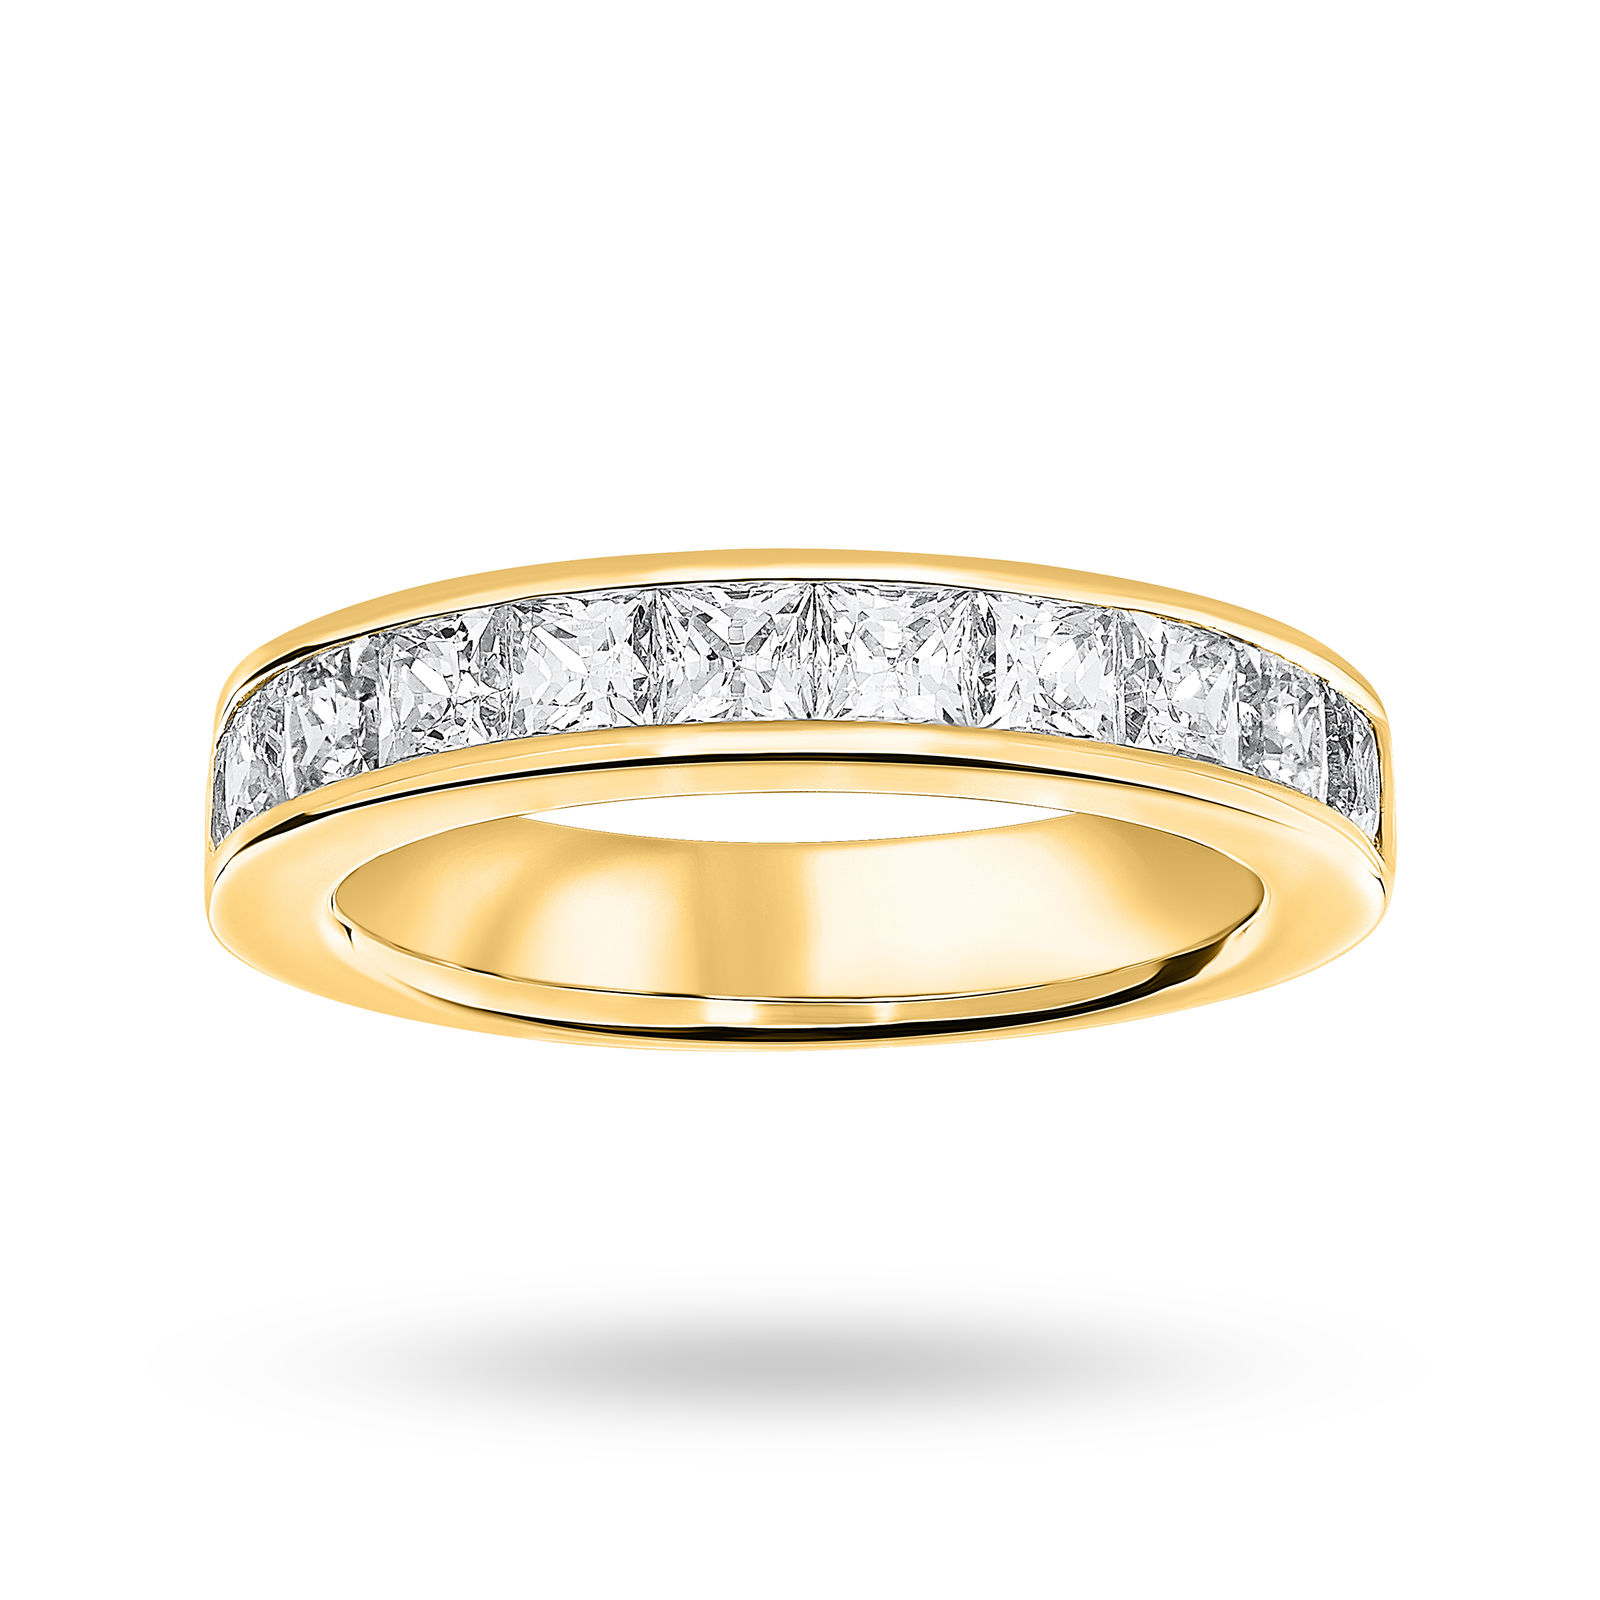 18 Carat Yellow Gold 2.00 Carat Princess Cut Half Eternity Ring